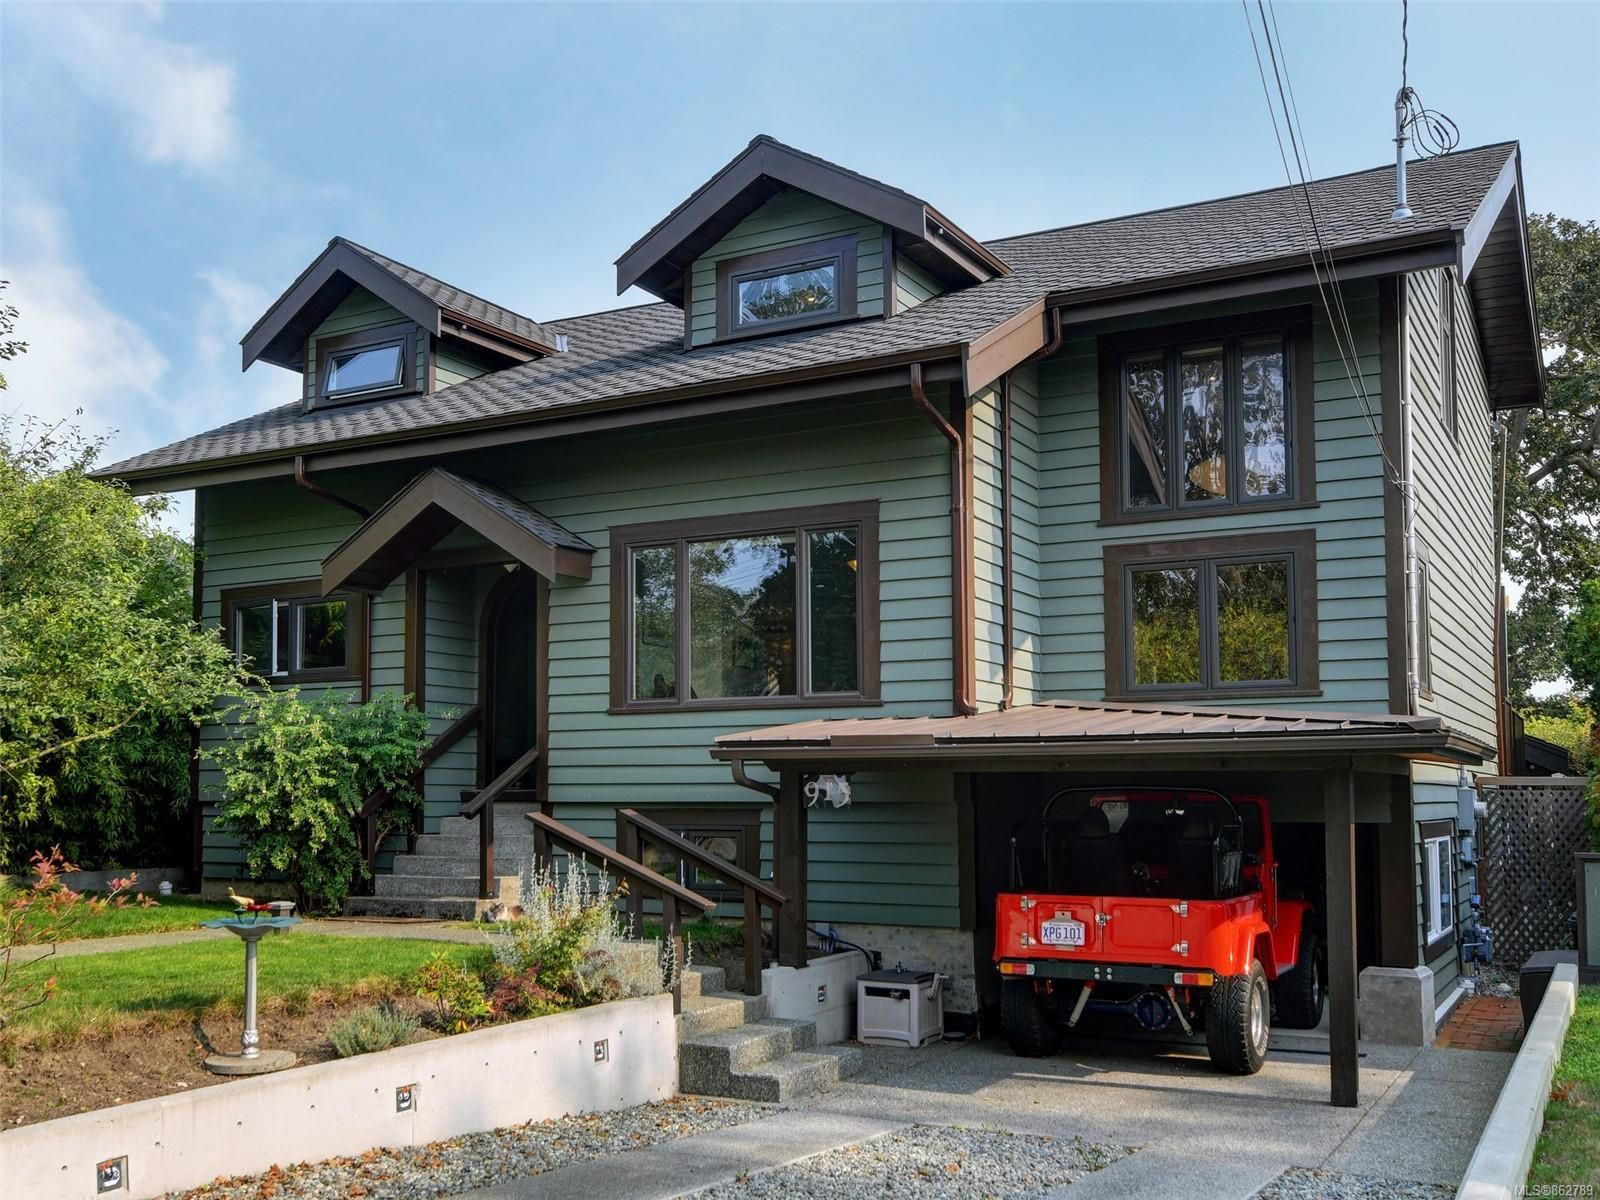 Main Photo: 915 Bank St in : Vi Fairfield East House for sale (Victoria)  : MLS®# 862789